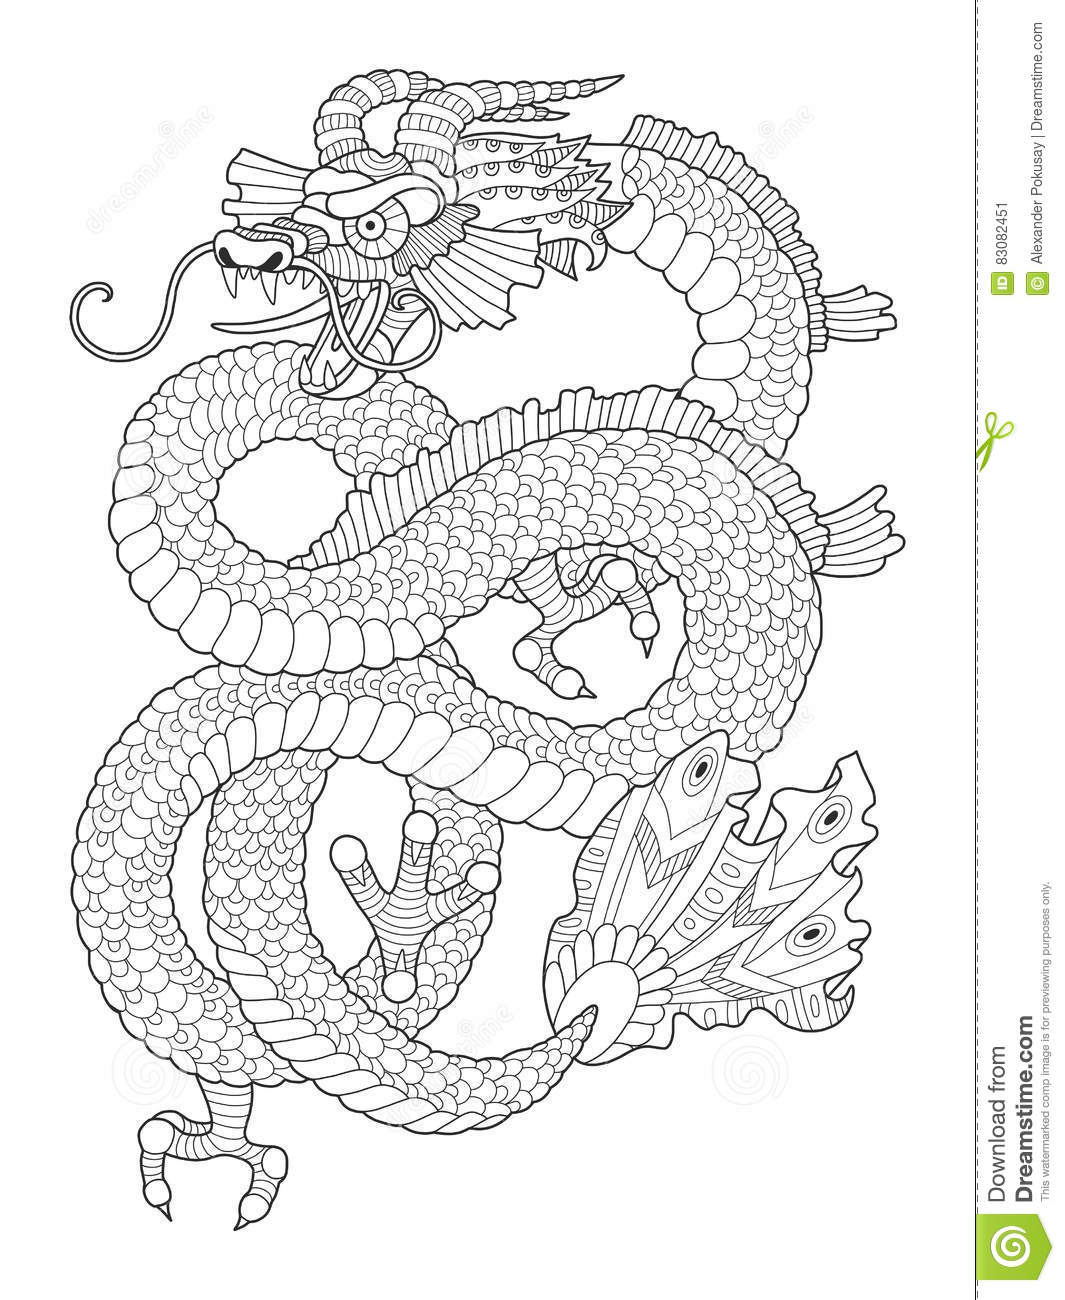 Royalty Free Illustration Download Dragon Coloring Book For Adults